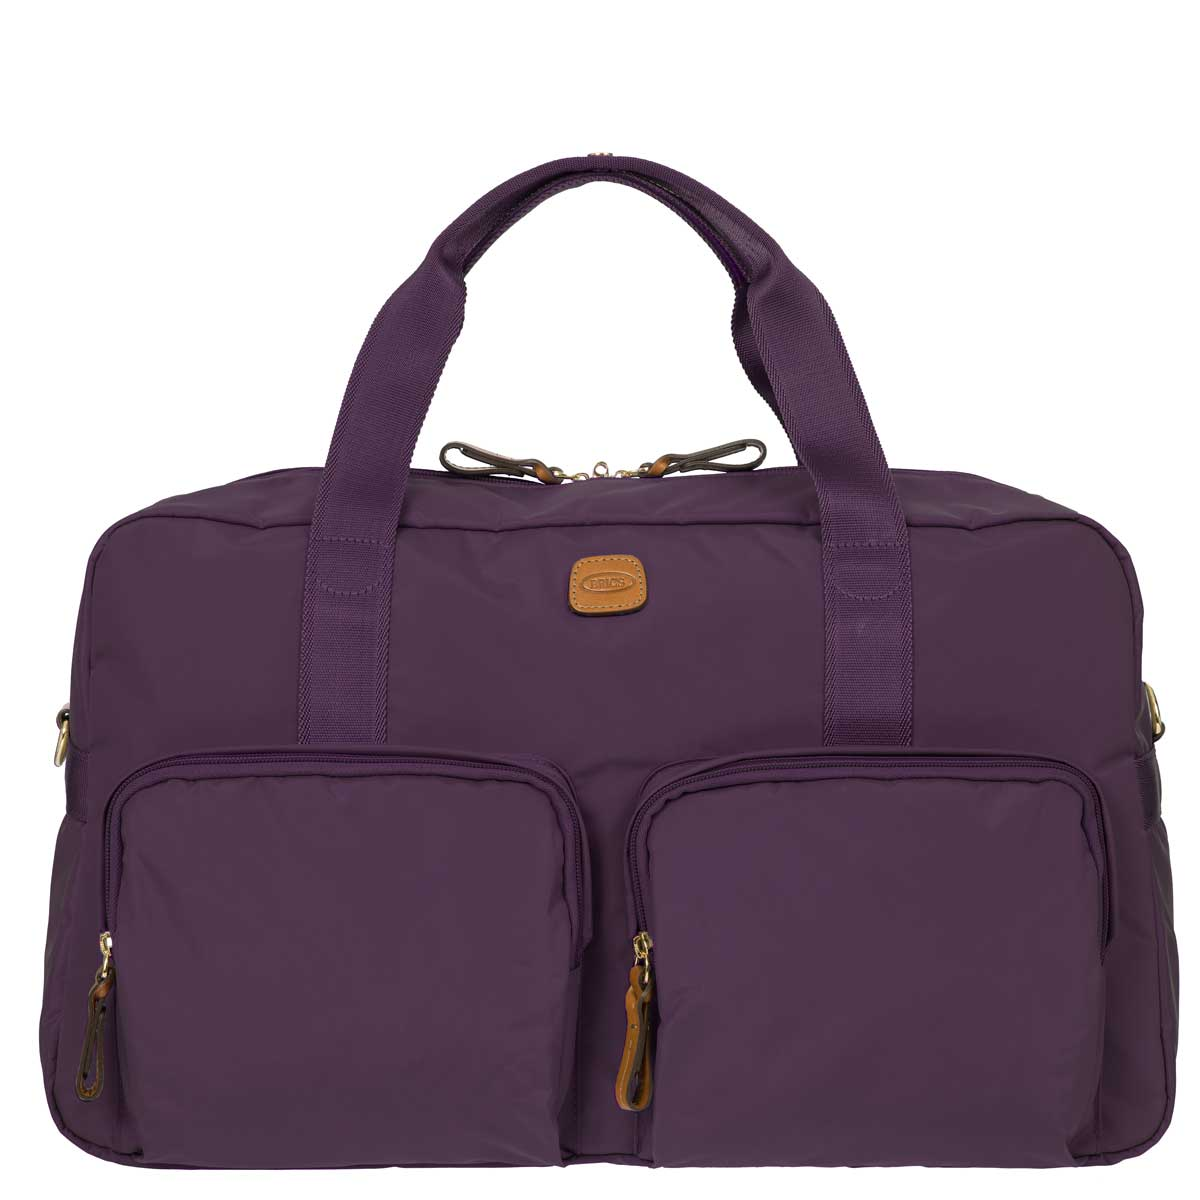 "X-Travel 18"" Boarding Duffle by Brics (Color: Violet)"